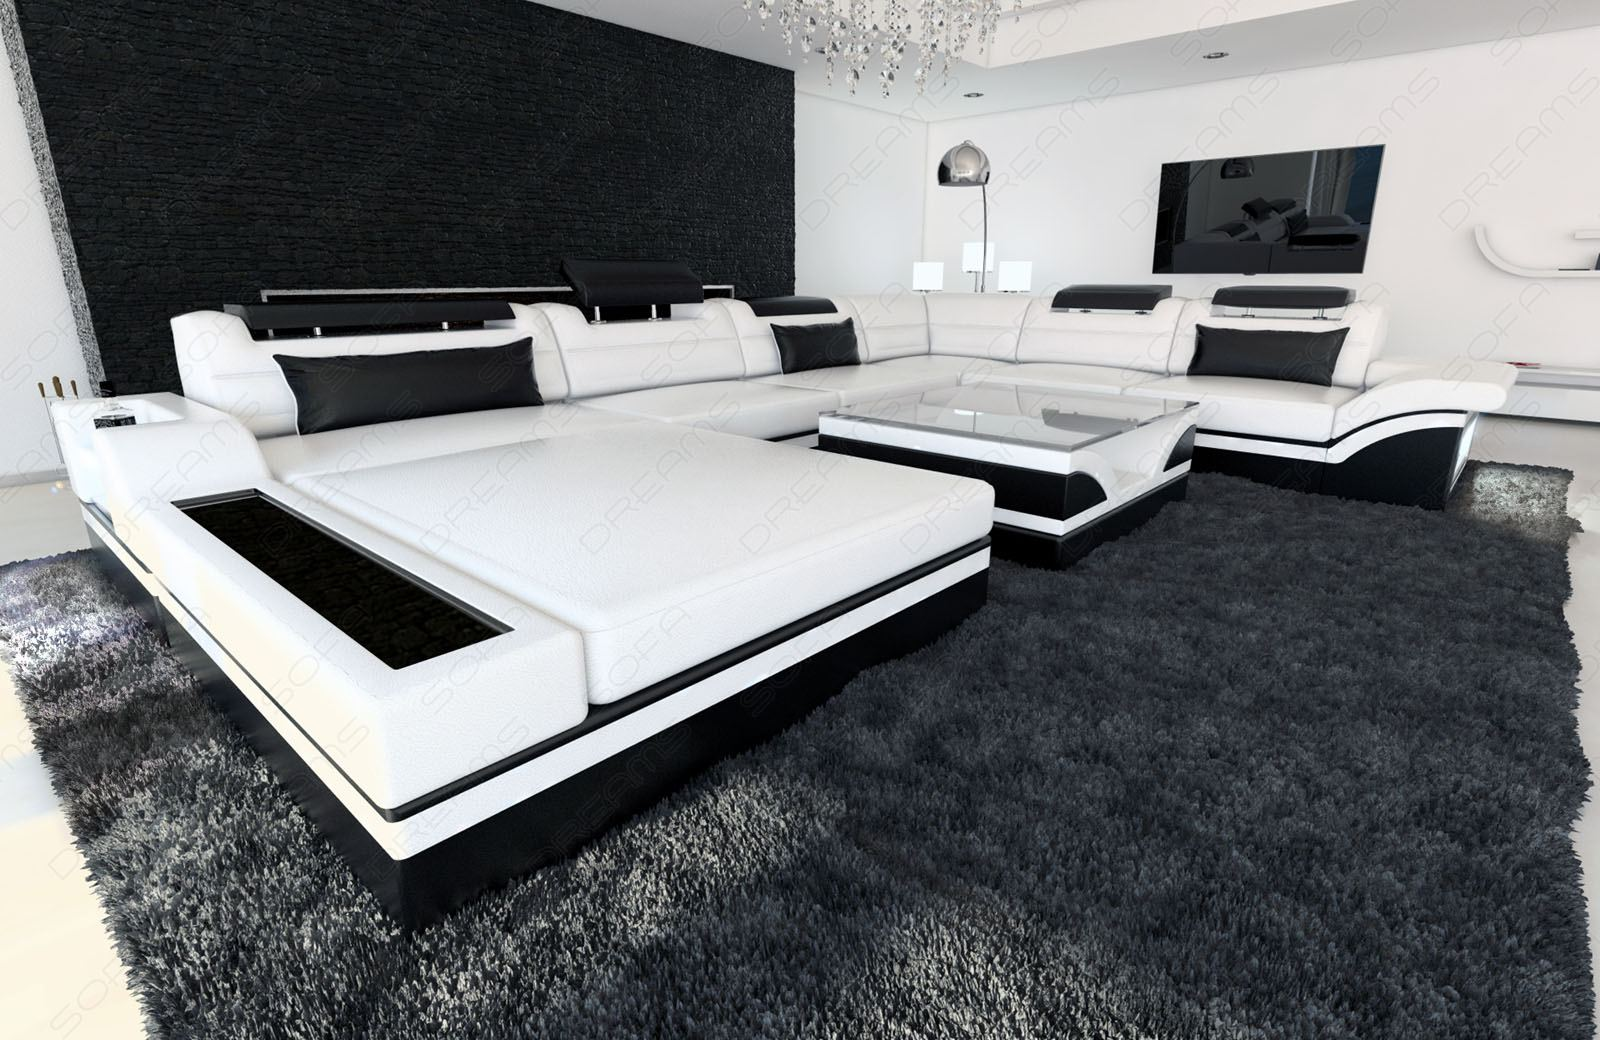 ledersofa mega wohnlandschaft mezzo xxl designer couch luxus ebay. Black Bedroom Furniture Sets. Home Design Ideas